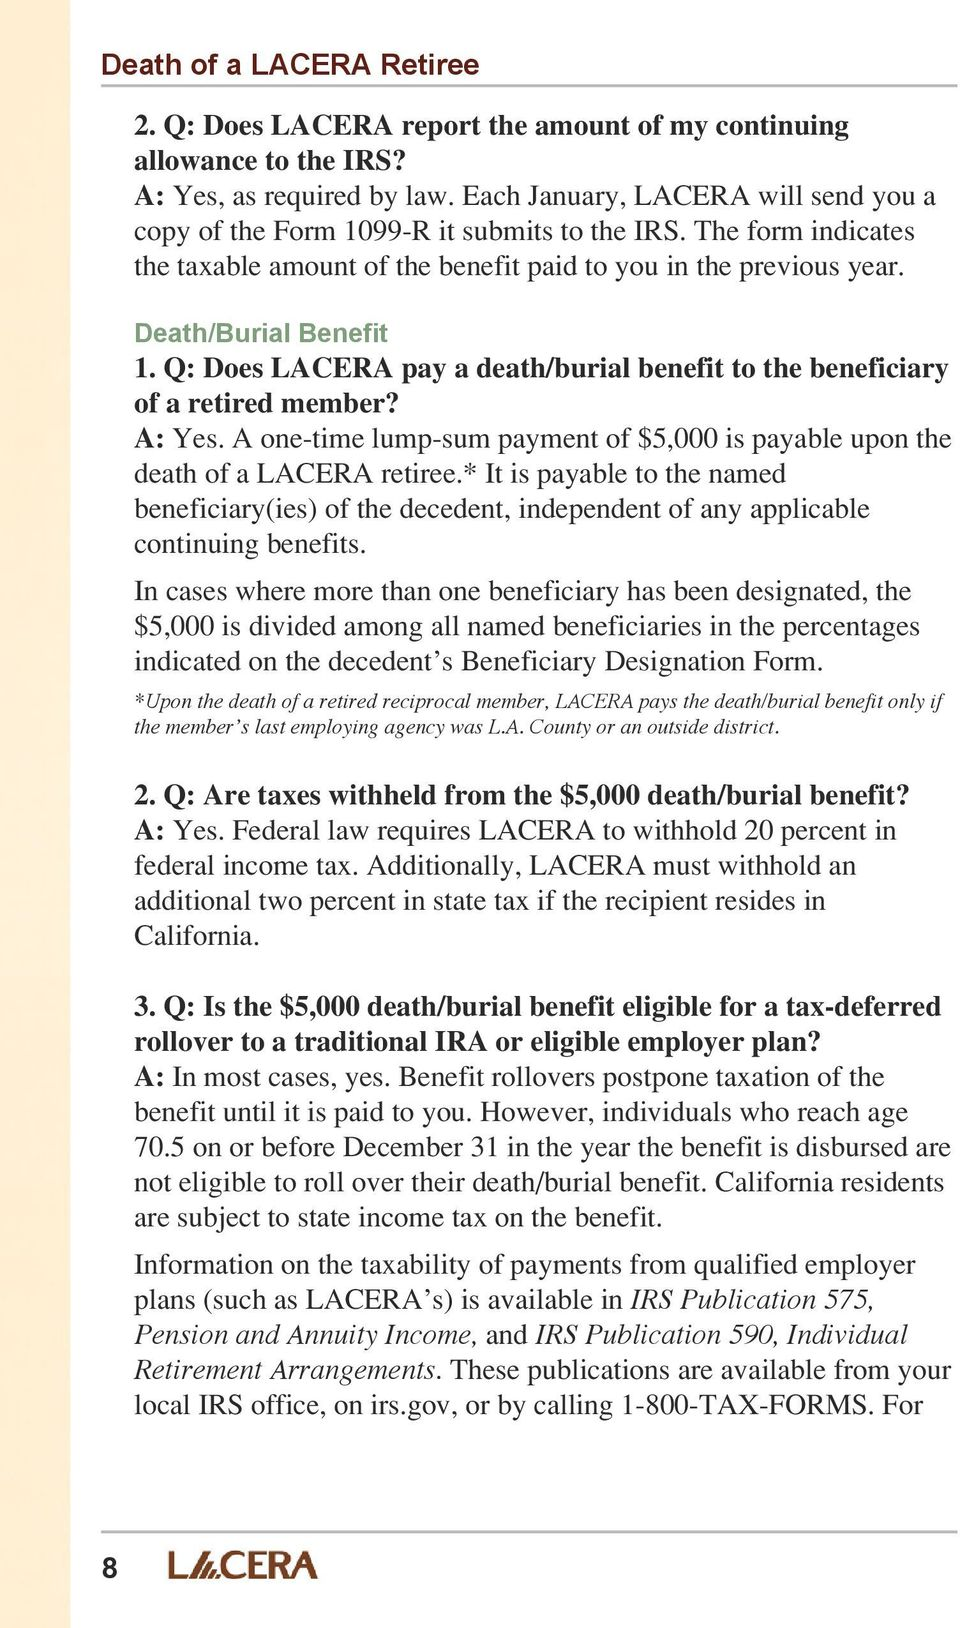 Q: Does LACERA pay a death/burial benefit to the beneficiary of a retired member? A: Yes. A one-time lump-sum payment of $5,000 is payable upon the death of a LACERA retiree.